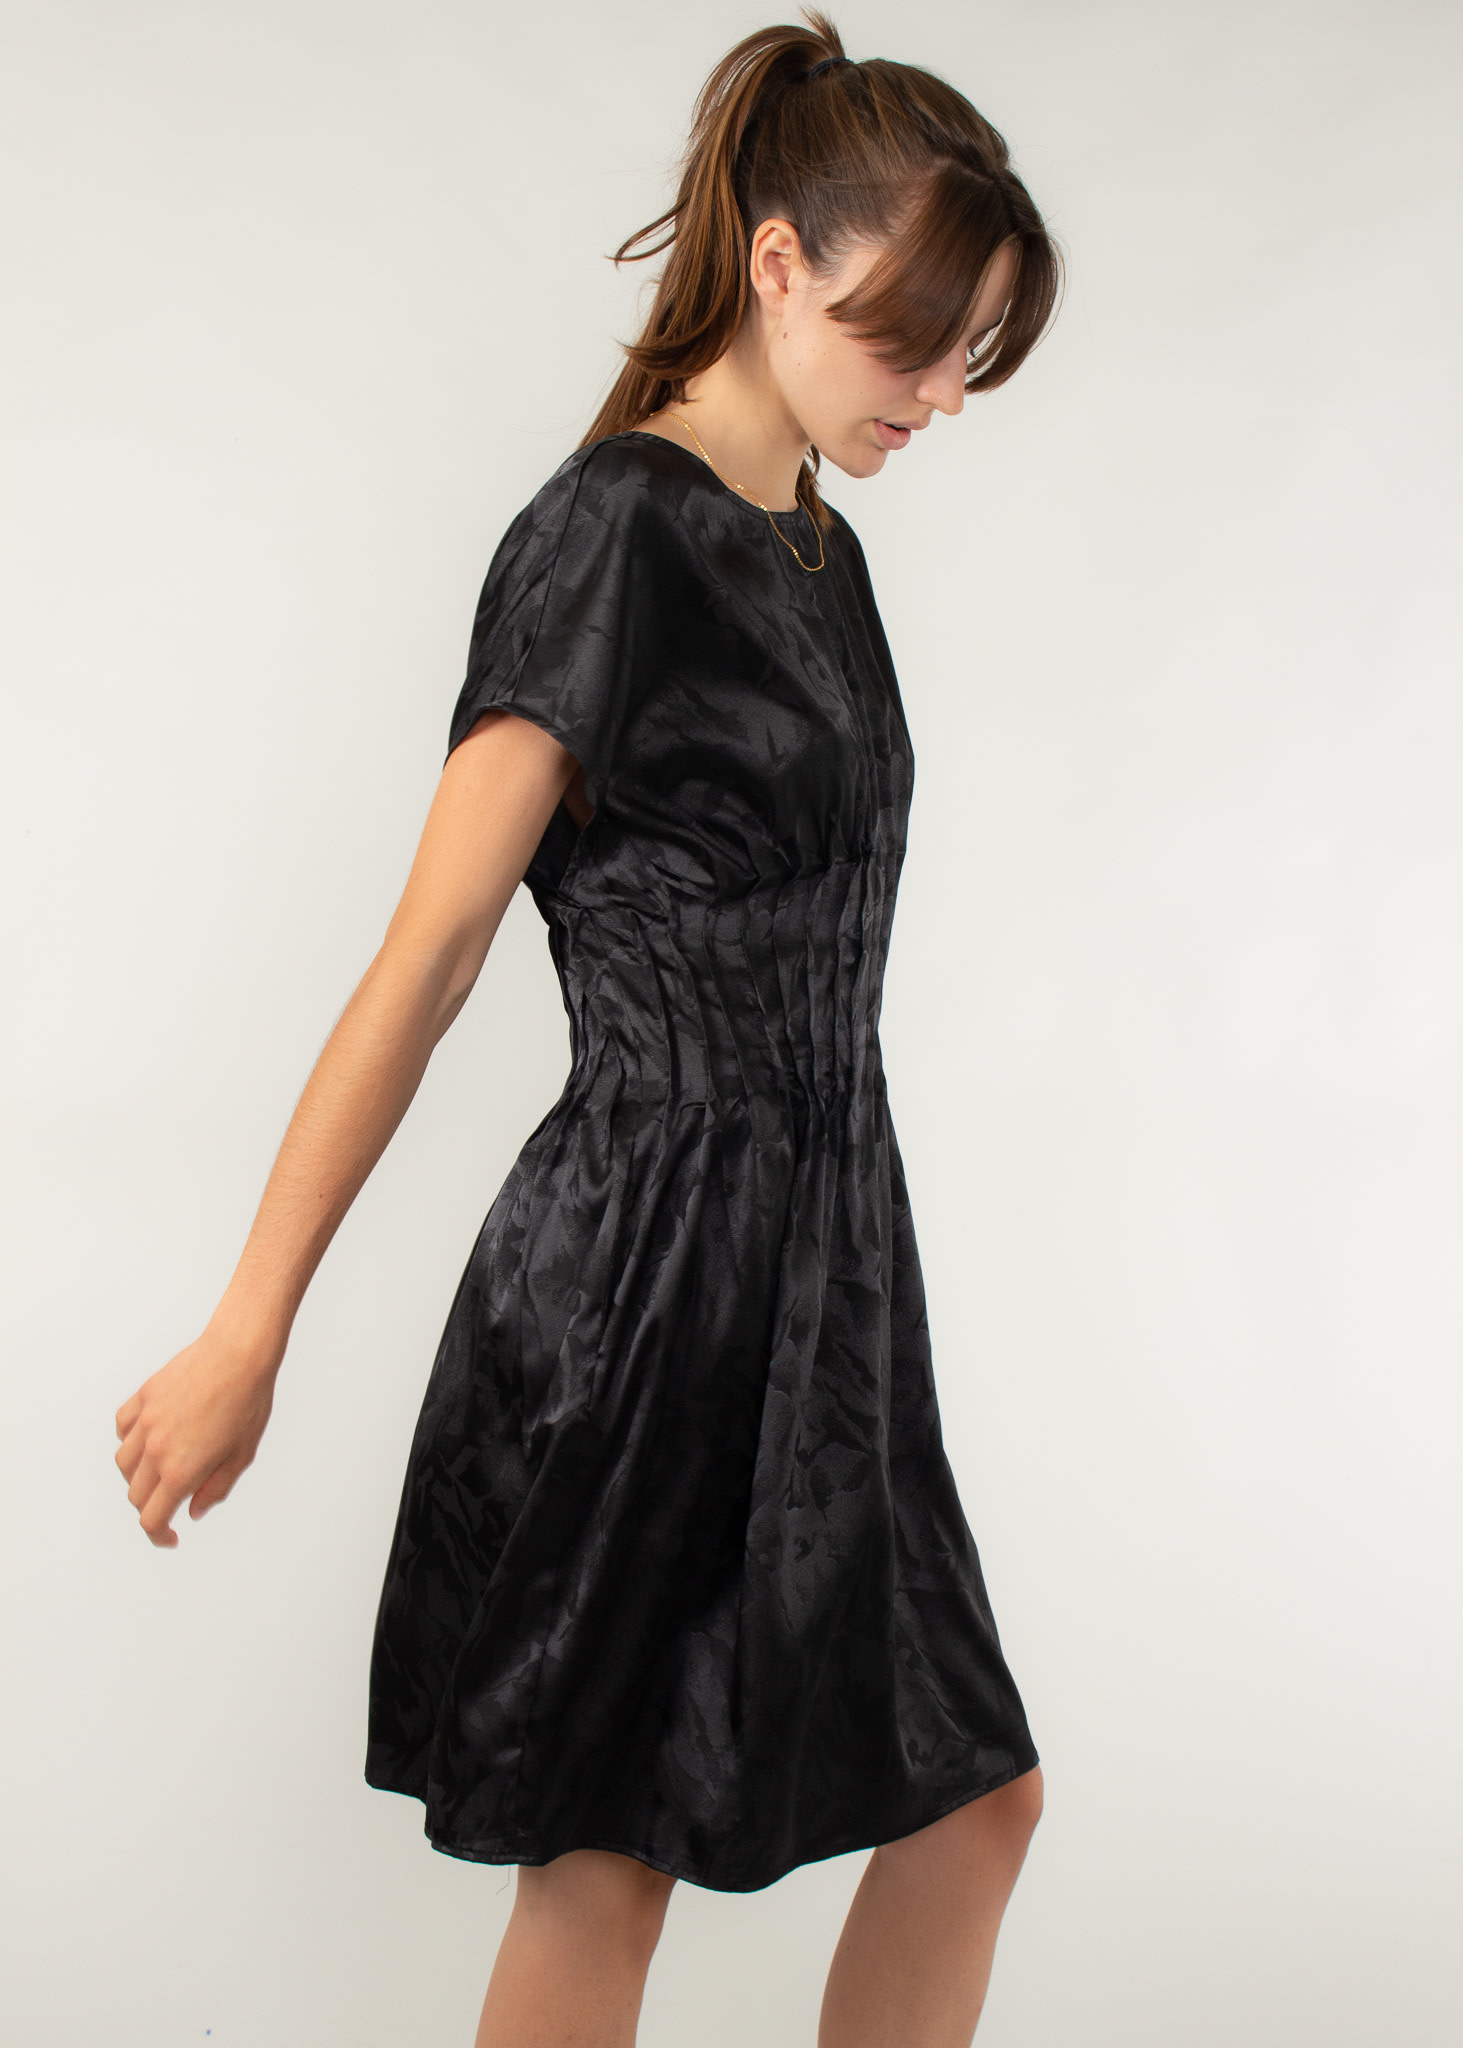 The Korner Little black dress